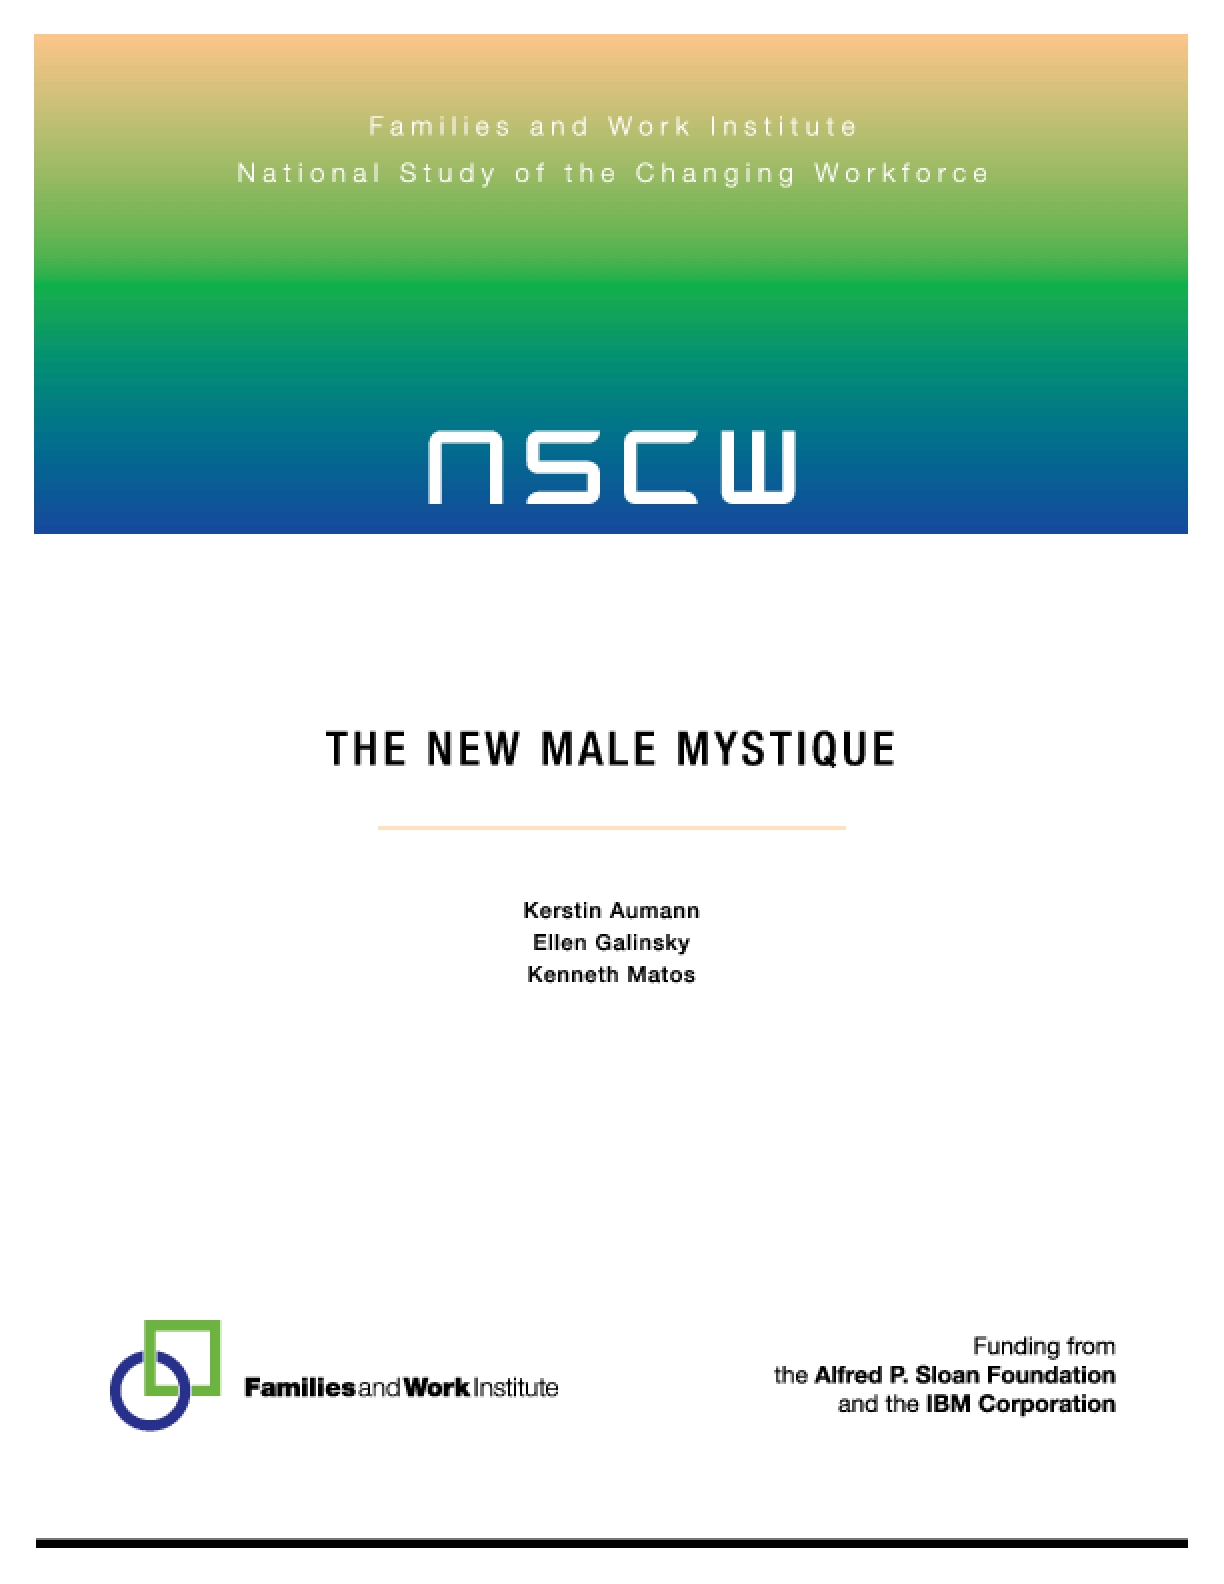 The New Male Mystique